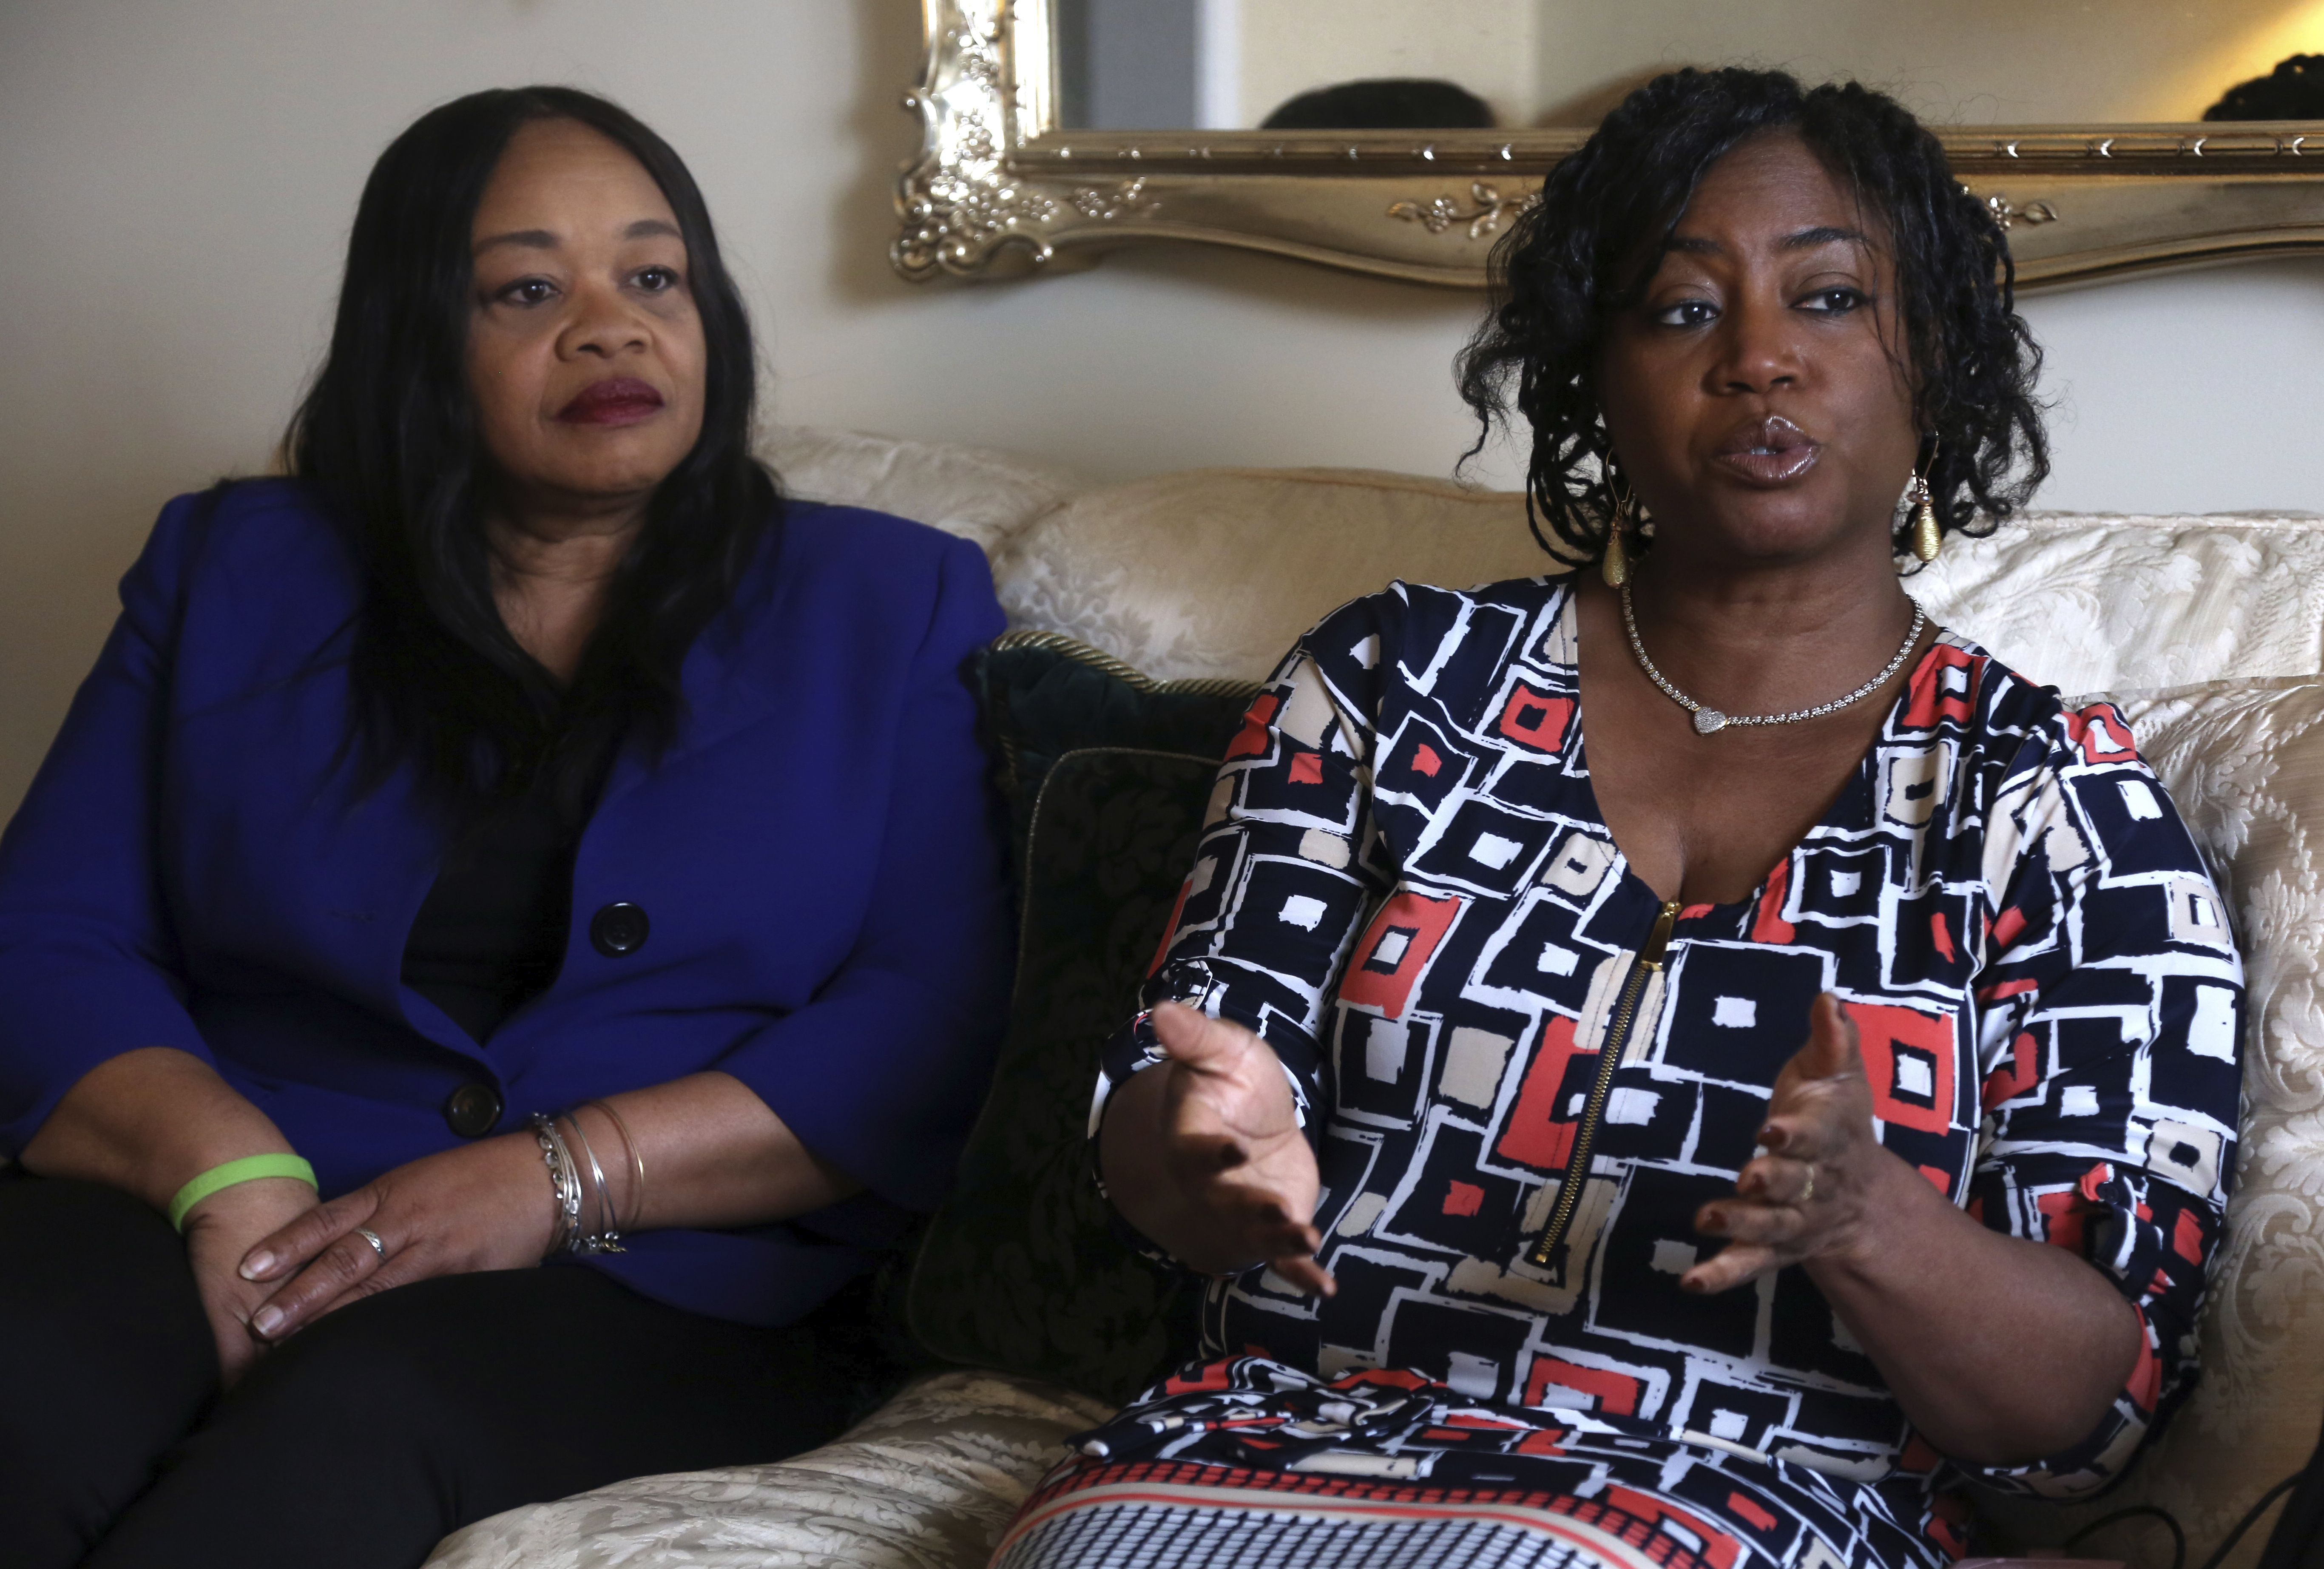 Sandra Thompson, right, speaks alongside Sandra Harrison, both golfers and members of a group of local women known as Sisters in the Fairway, during an interview with The Associated Press, Tuesday April 24, 2018 in York, Pa. Officials at the Grandview Golf Club in York called police on the group Saturday, accusing them of playing too slowly and holding up others behind them.